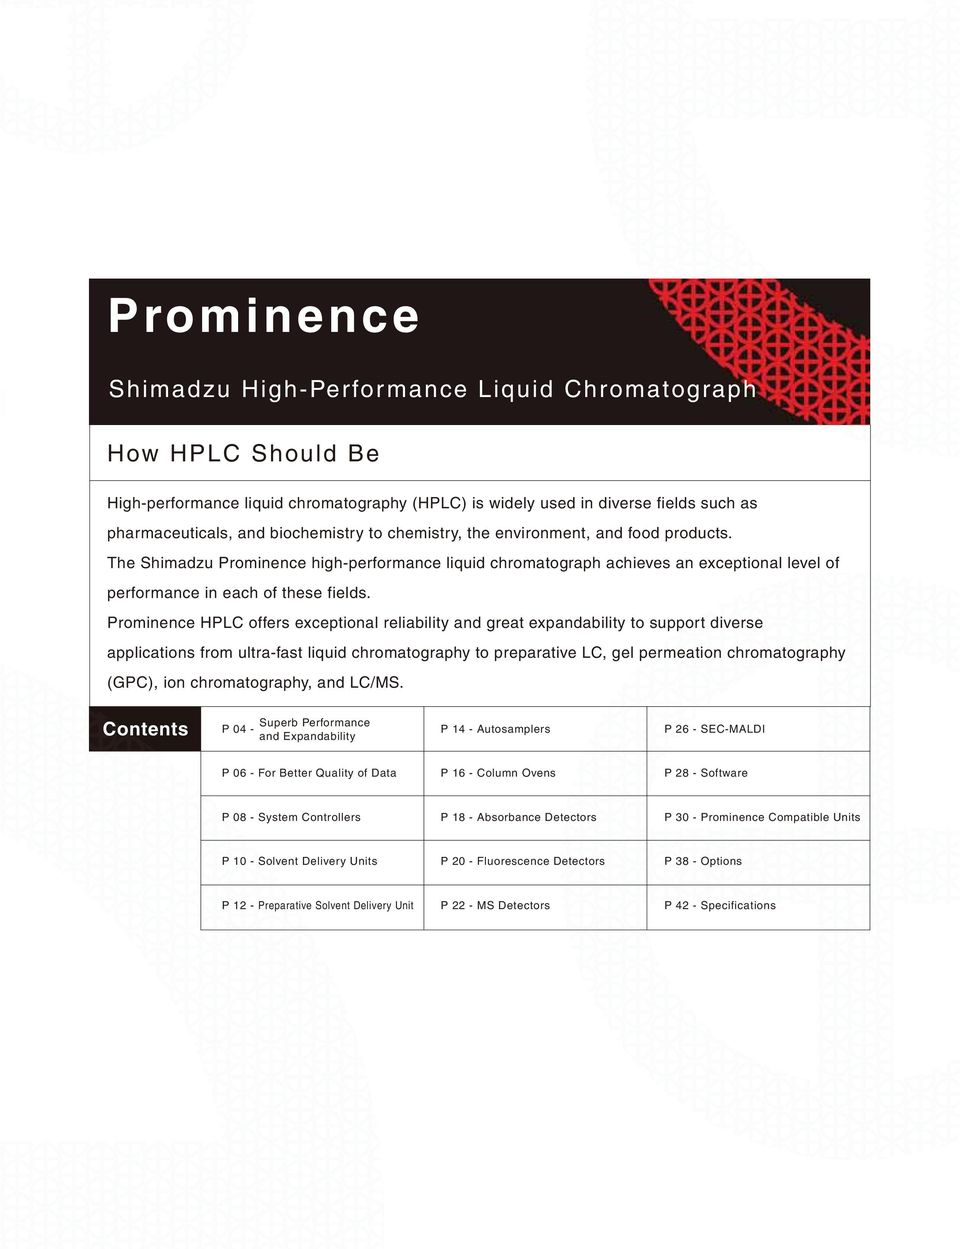 C196-E061N  Prominence  Shimadzu High-Performance Liquid